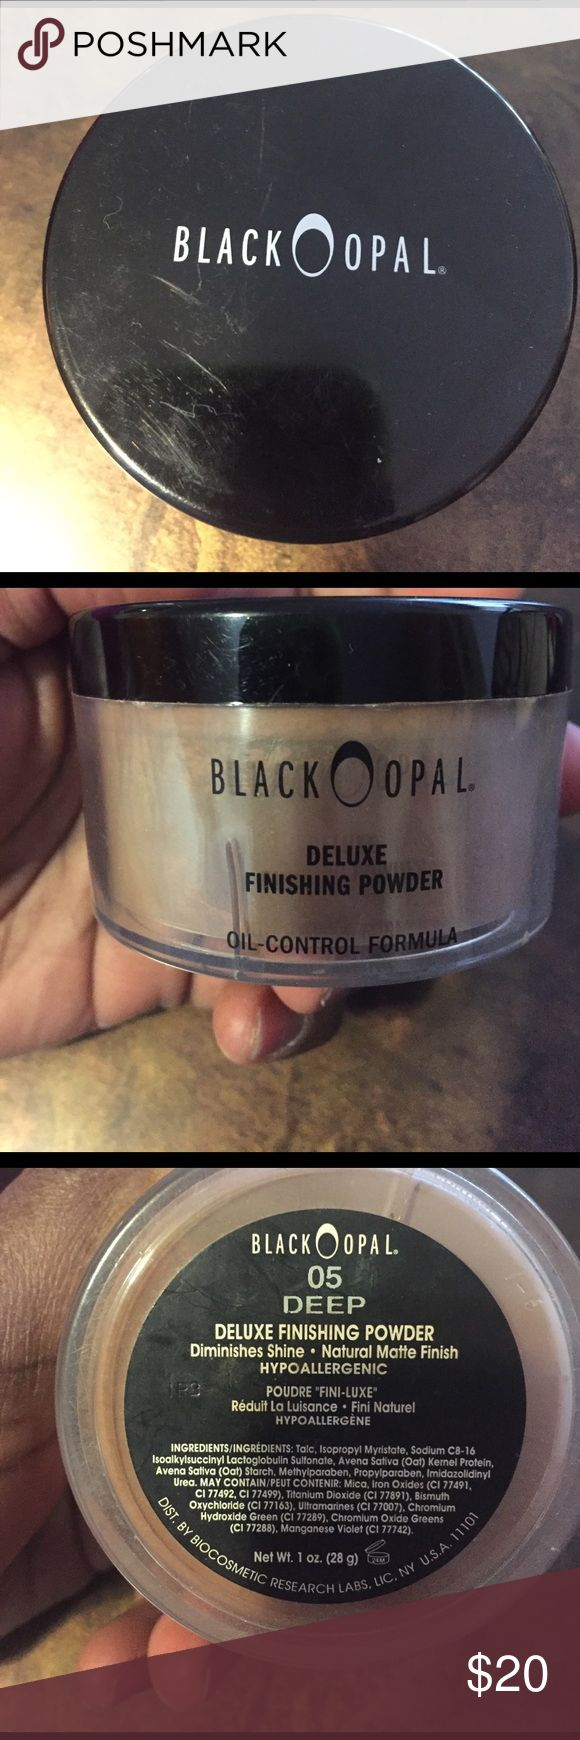 Black opal finishing powder Black opal finishing powder, color deep, used only one time, have all product black opal Makeup Face Powder